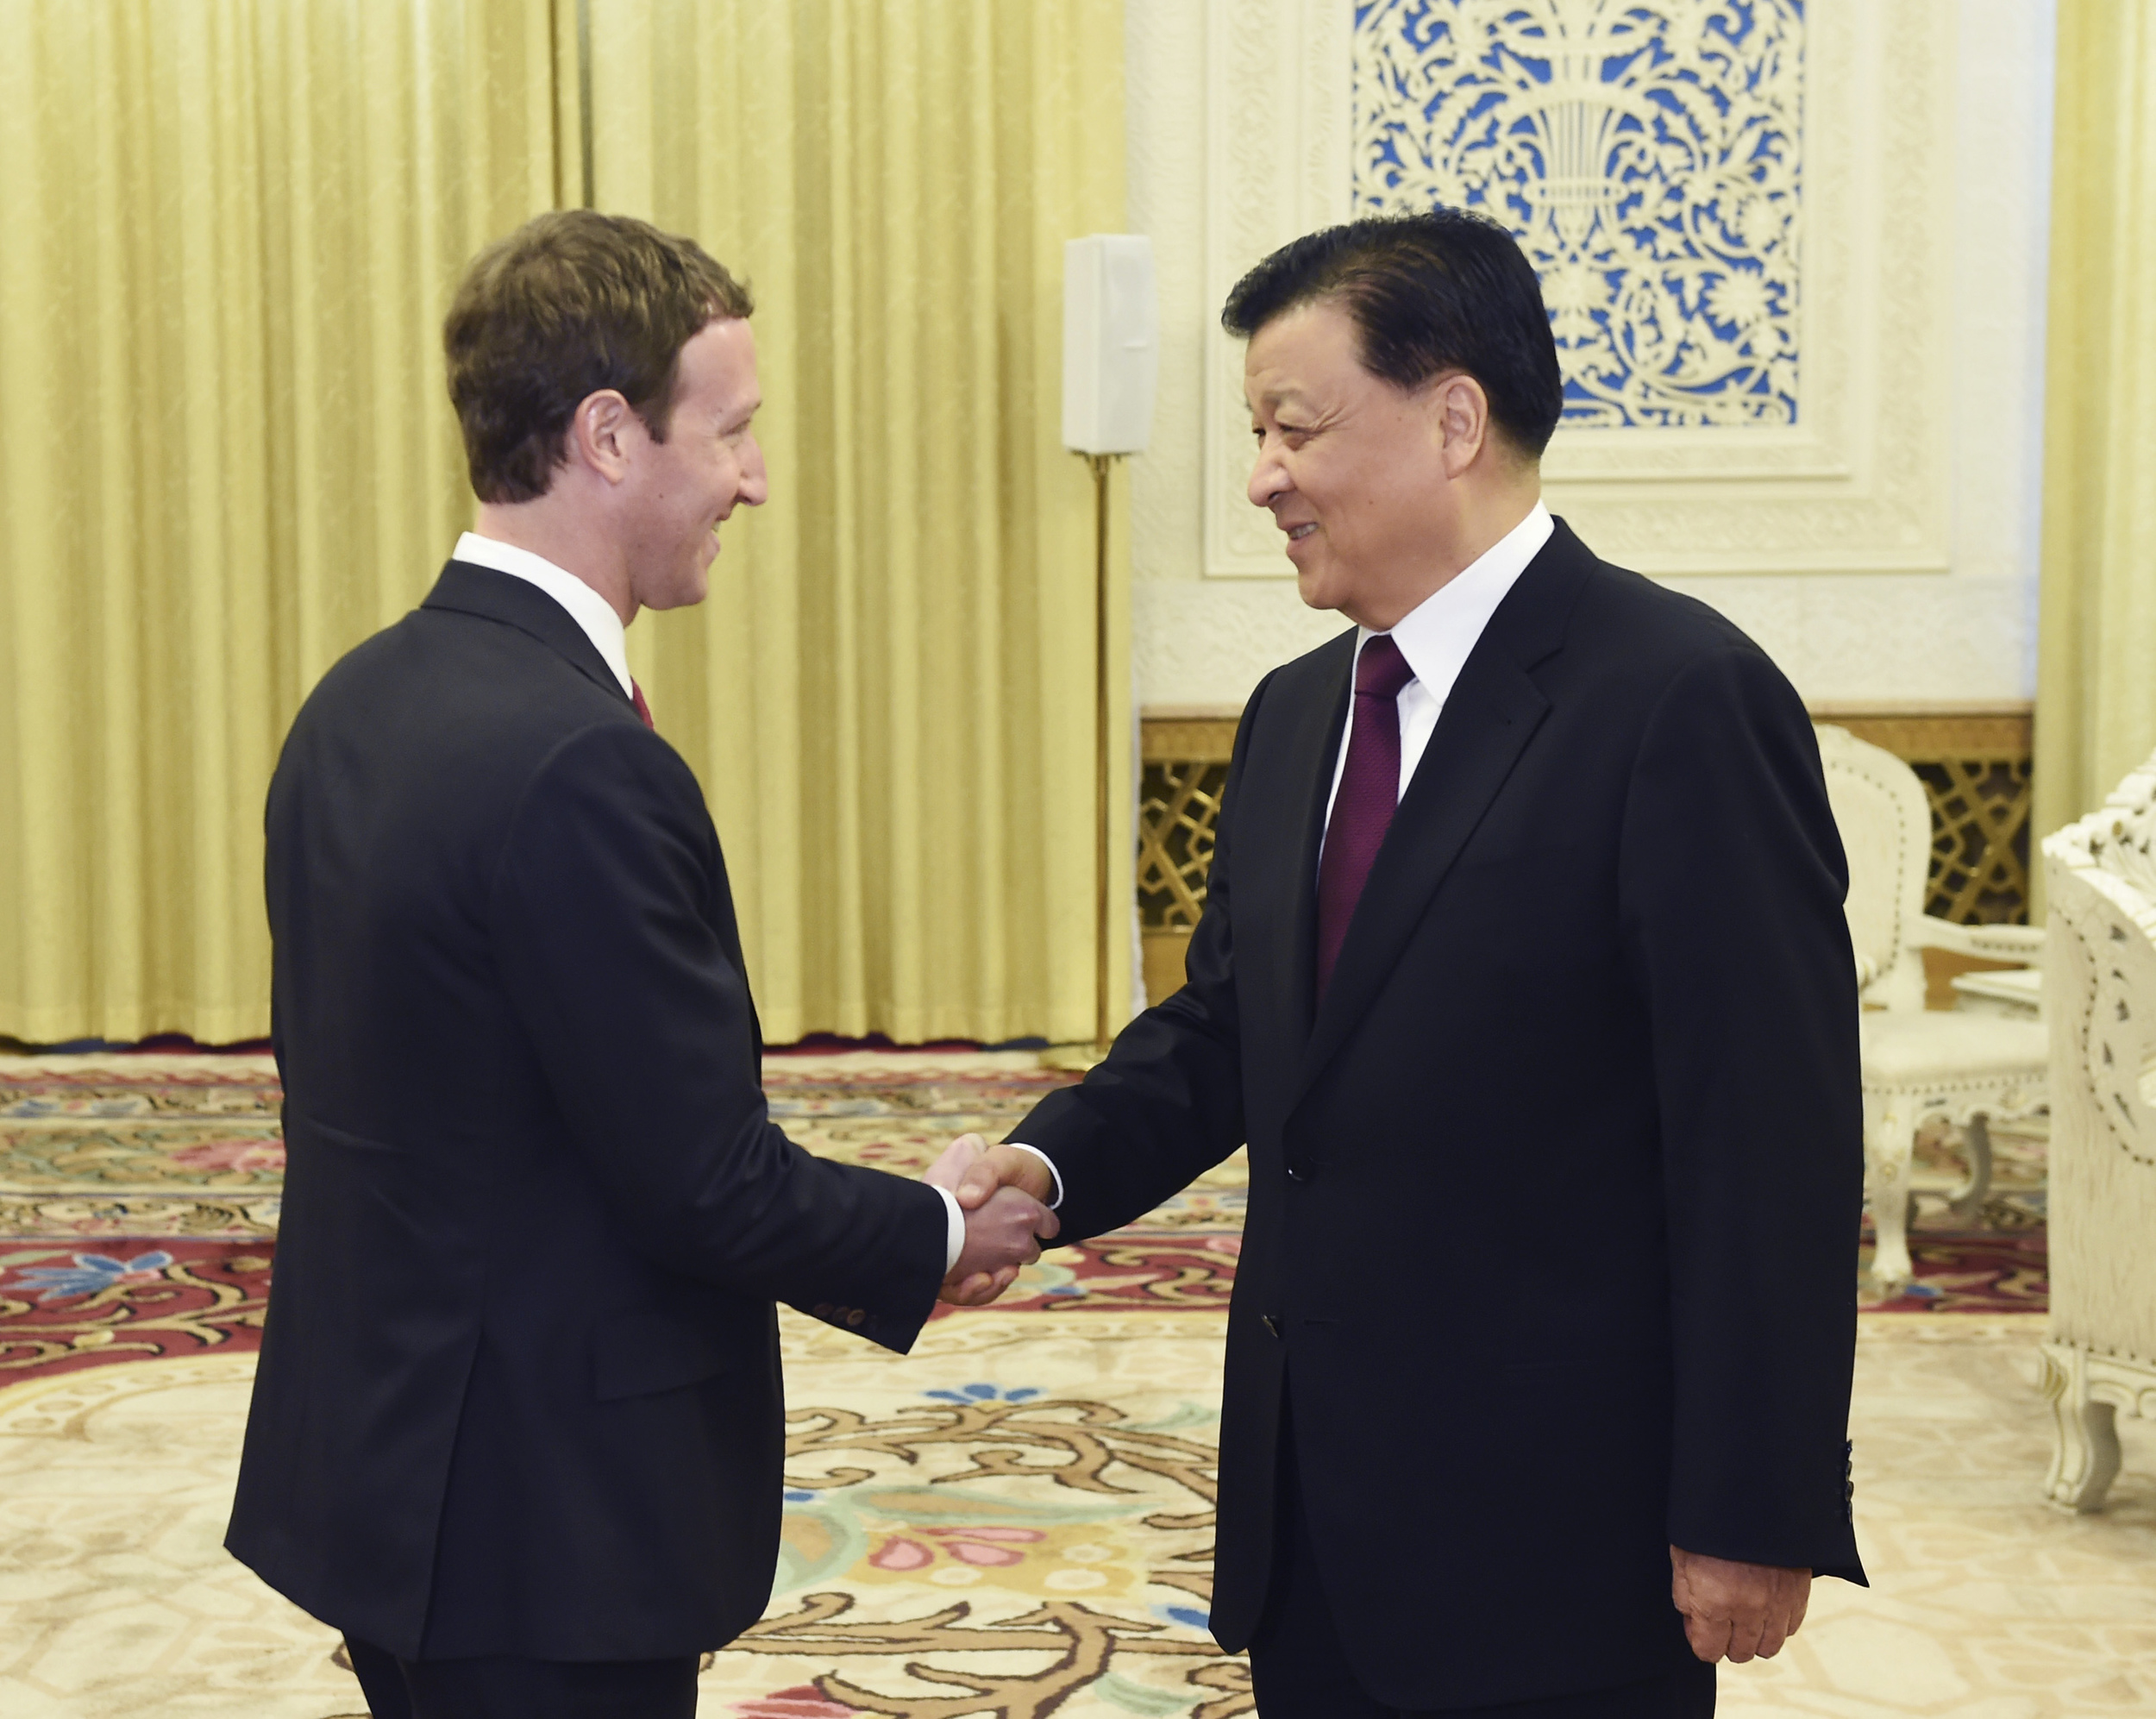 In this March 19, 2016 photo provided by China's Xinhua News Agency, Liu Yunshan, right, a member of the Politburo Standing Committee meets with Facebook founder and CEO Mark Zuckerberg in Beijing, the capital of China.Facebook founder Zuckerberg held a rare meeting with China's propaganda chief Liu at a time when Chinese authorities are tightening control over their cyberspace. (Wang Ye/Xinhua News Agency via AP)